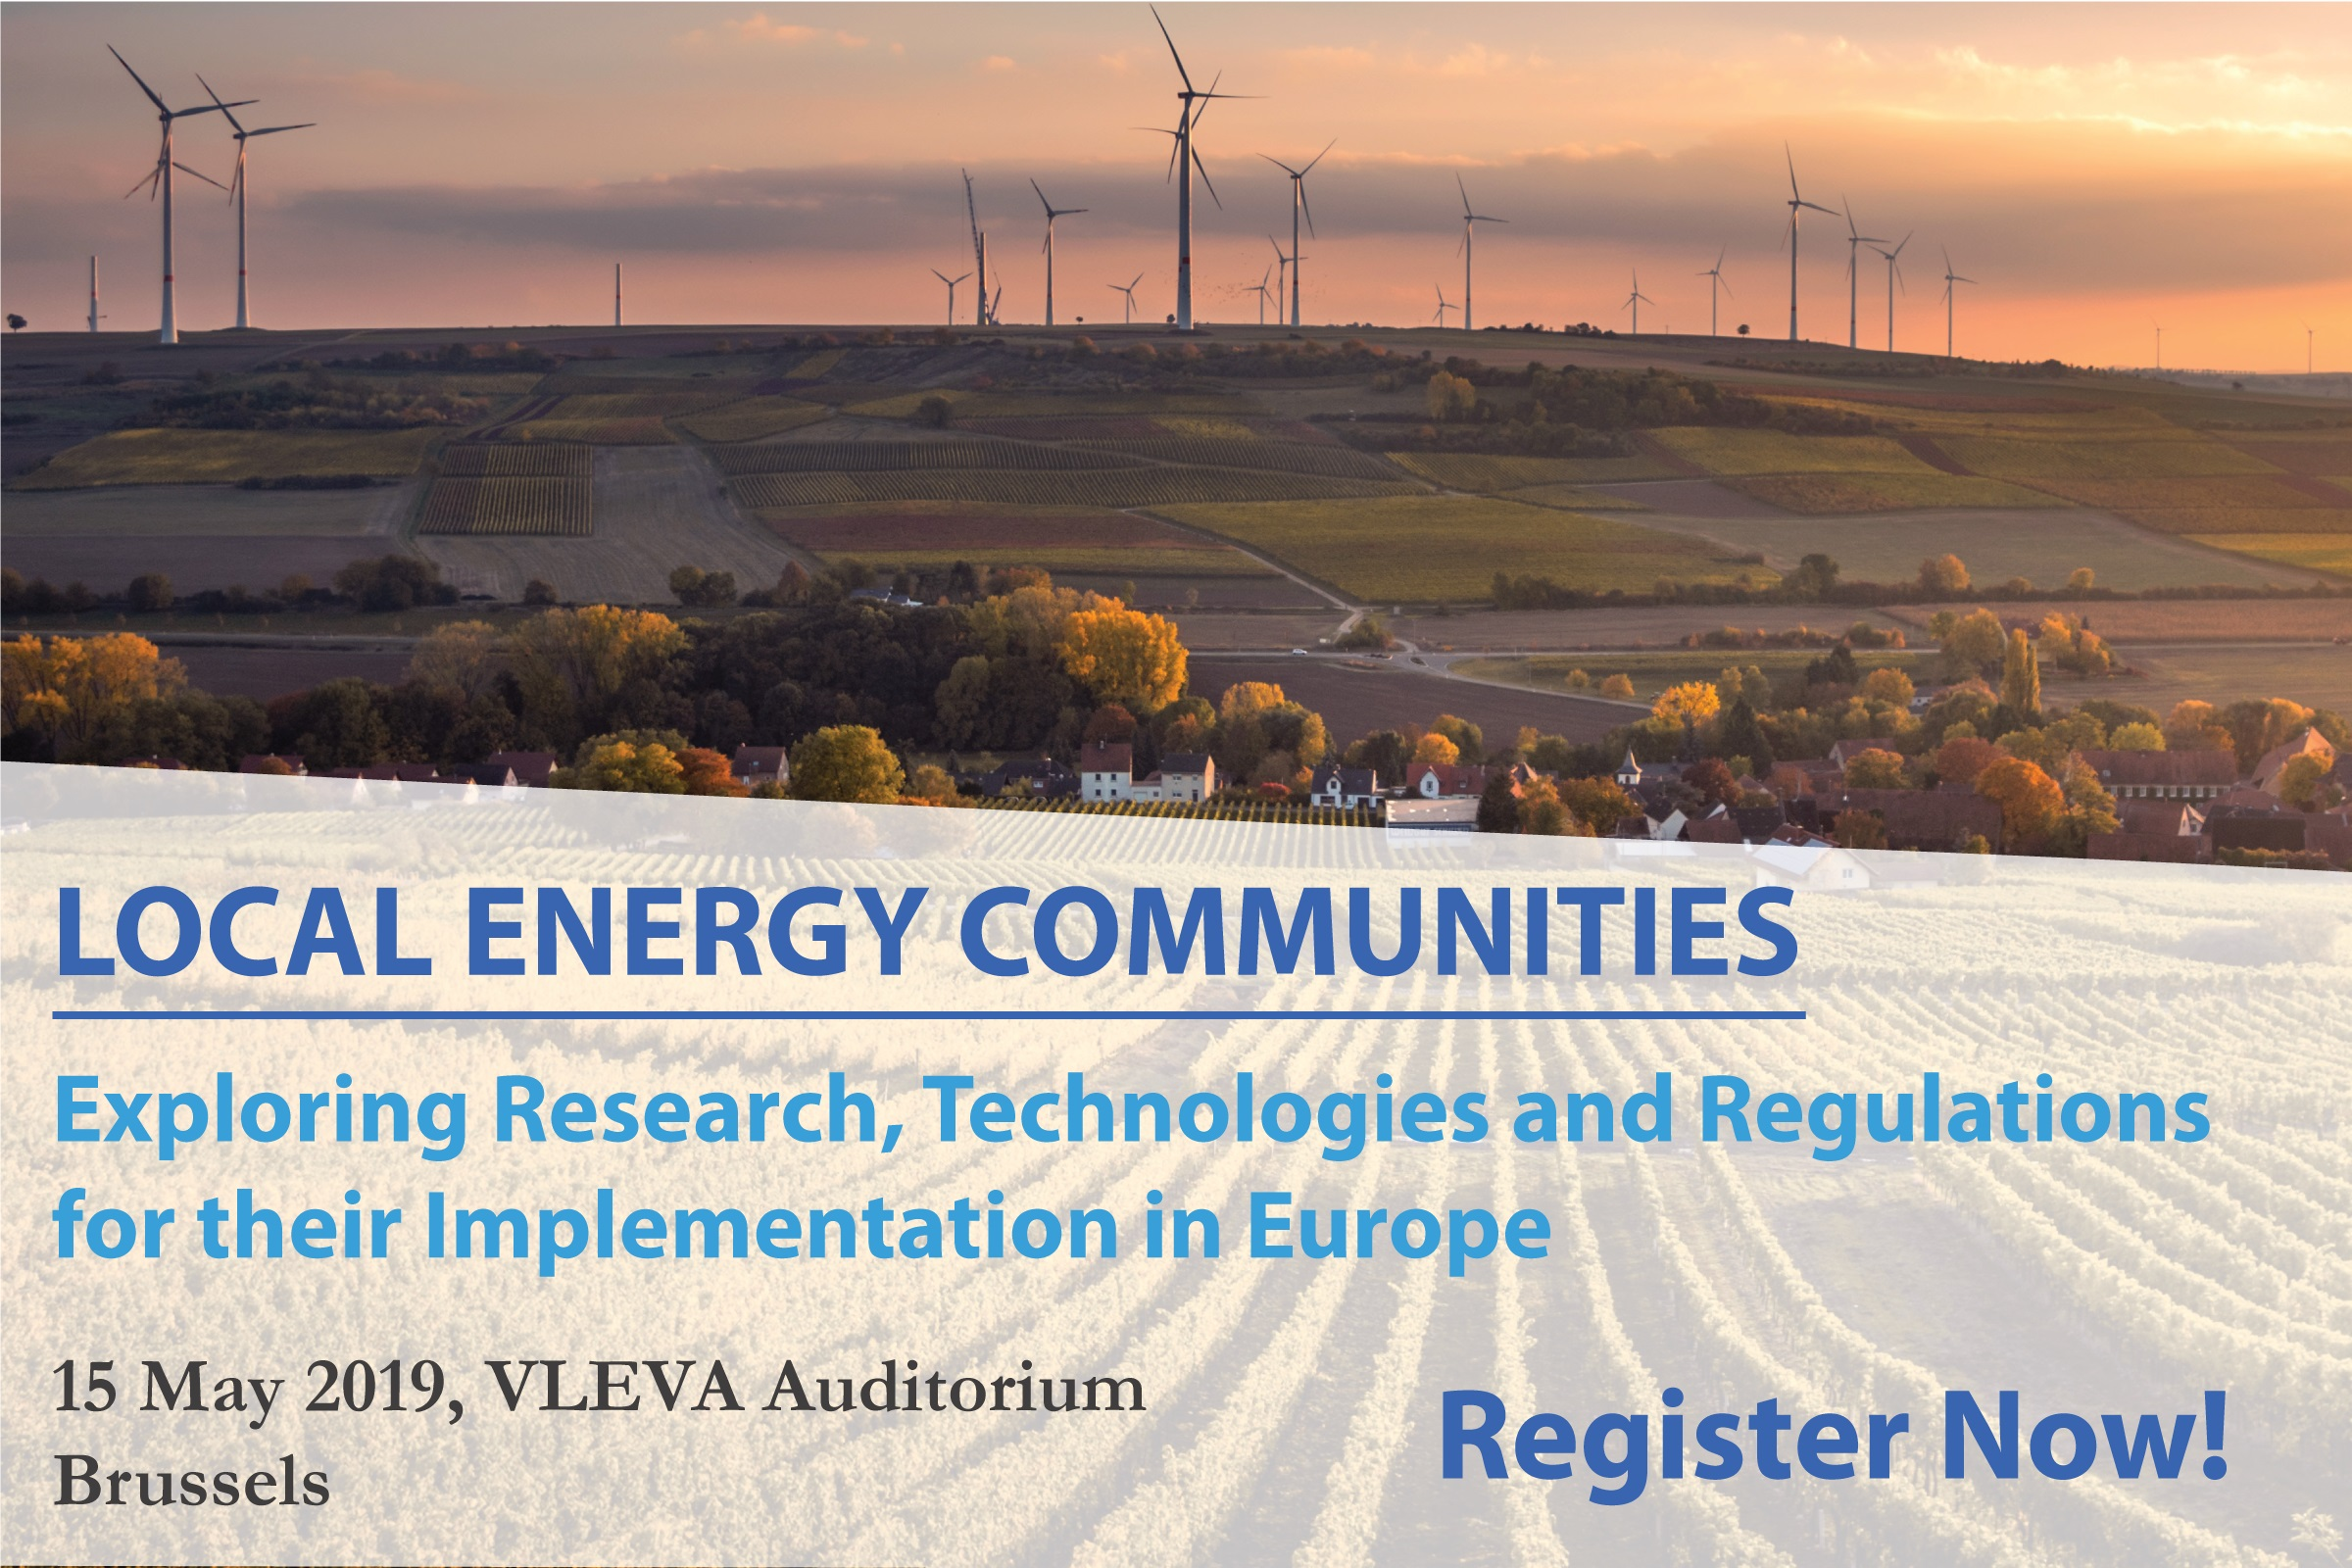 Local Energy Community Event